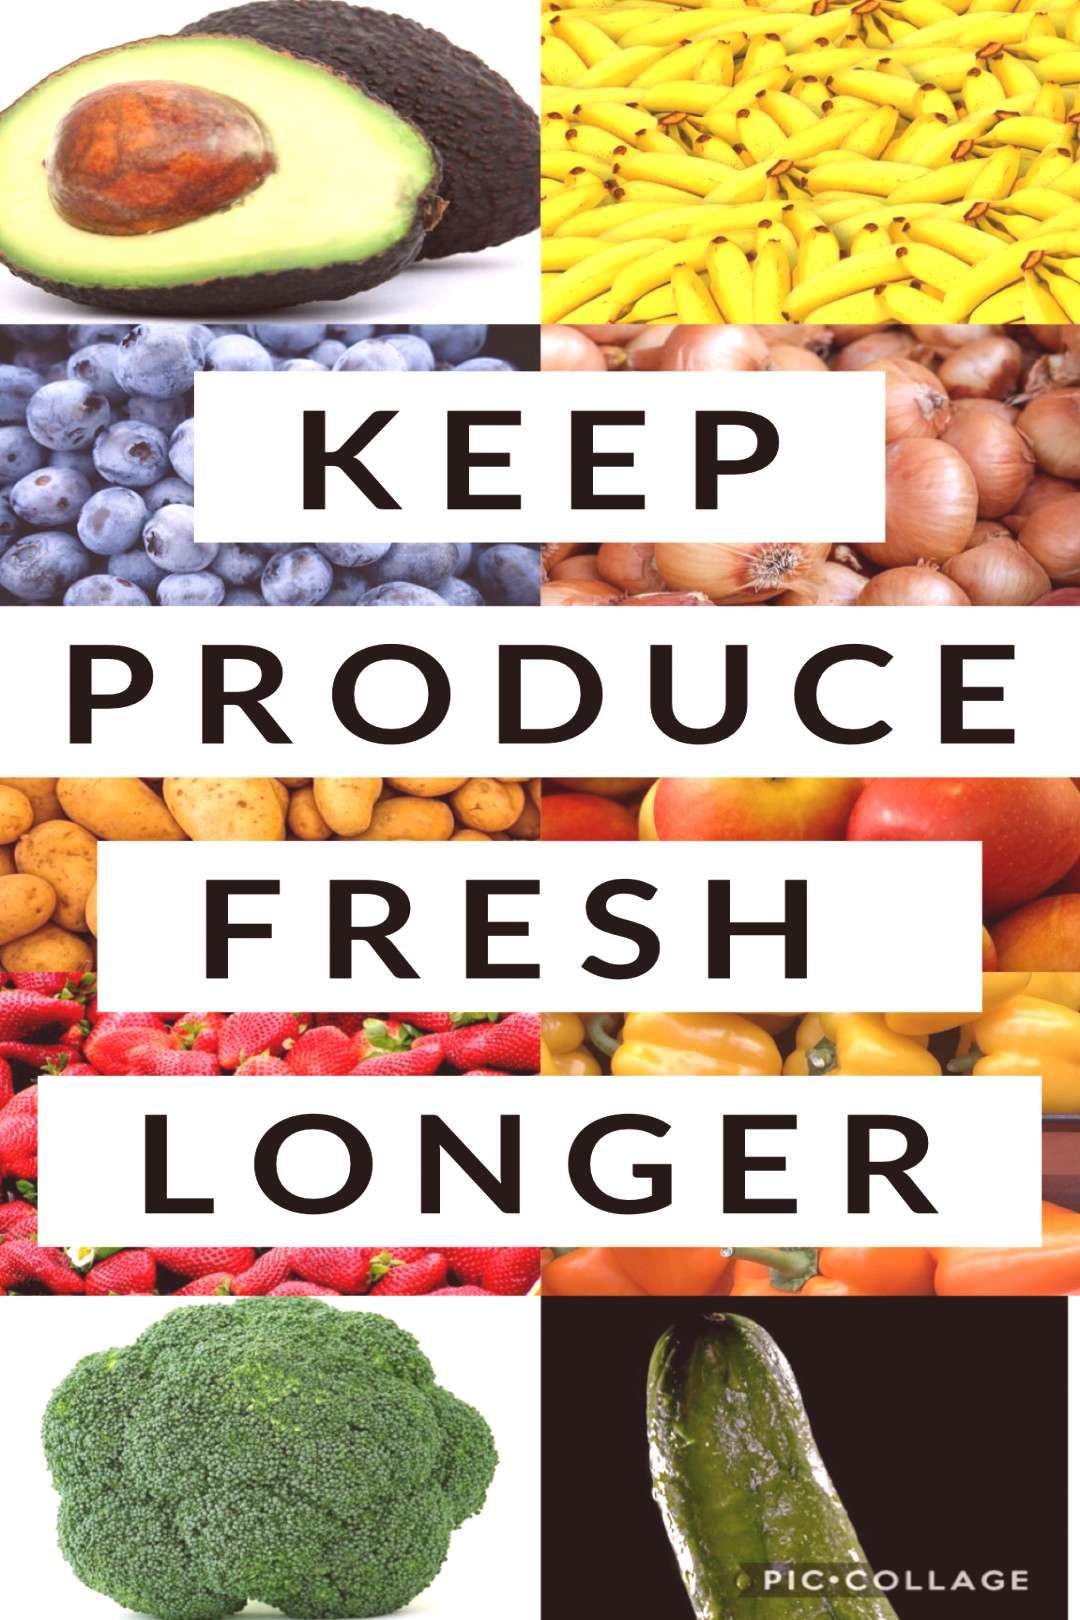 The Best Ways to Store Vegetables and Fruit Produce to Keep it Fresh